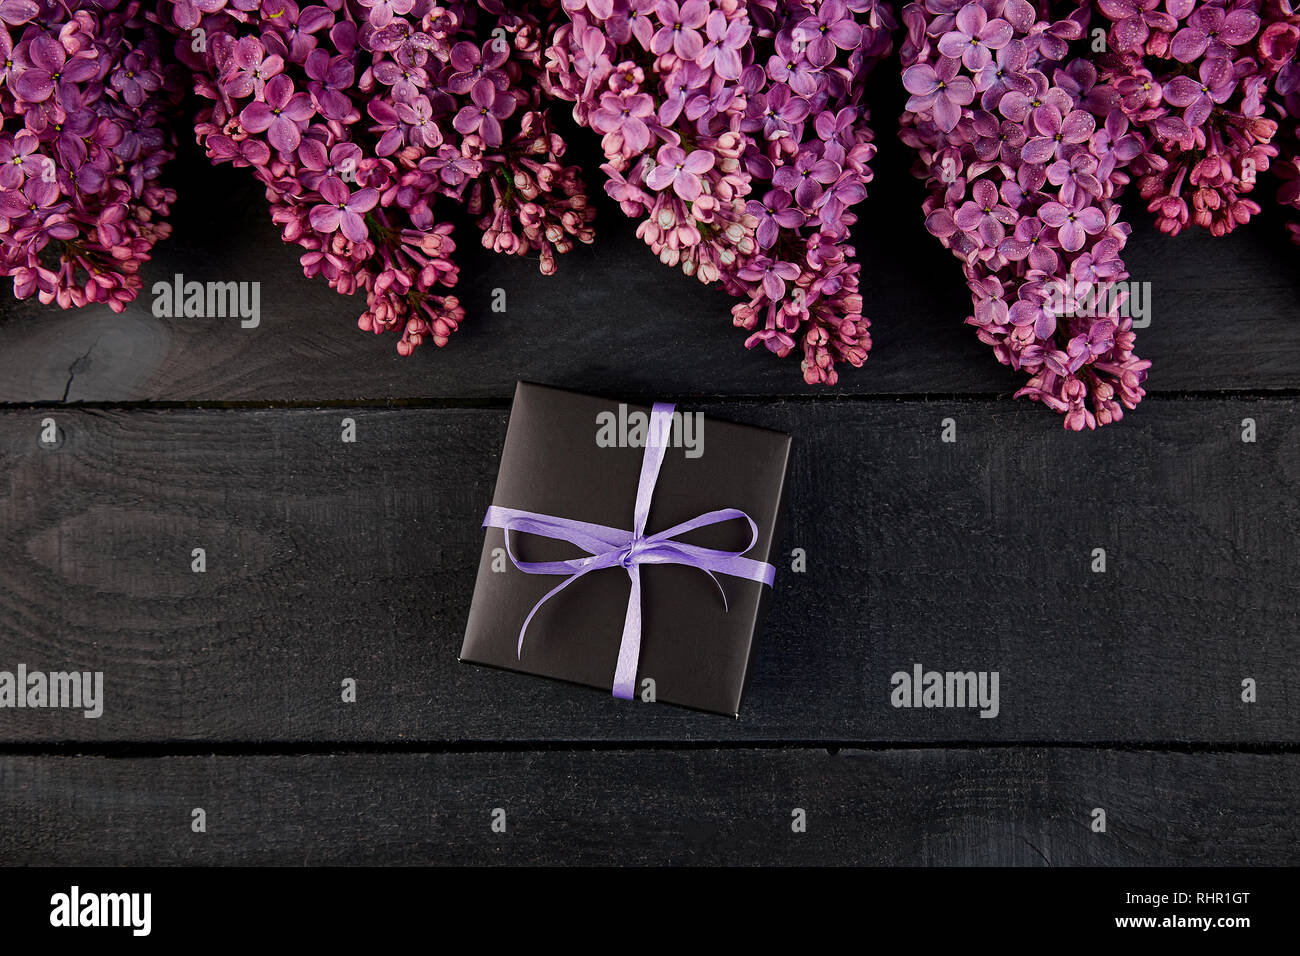 969efdd81519e Black small gift boxes wrapped with violet